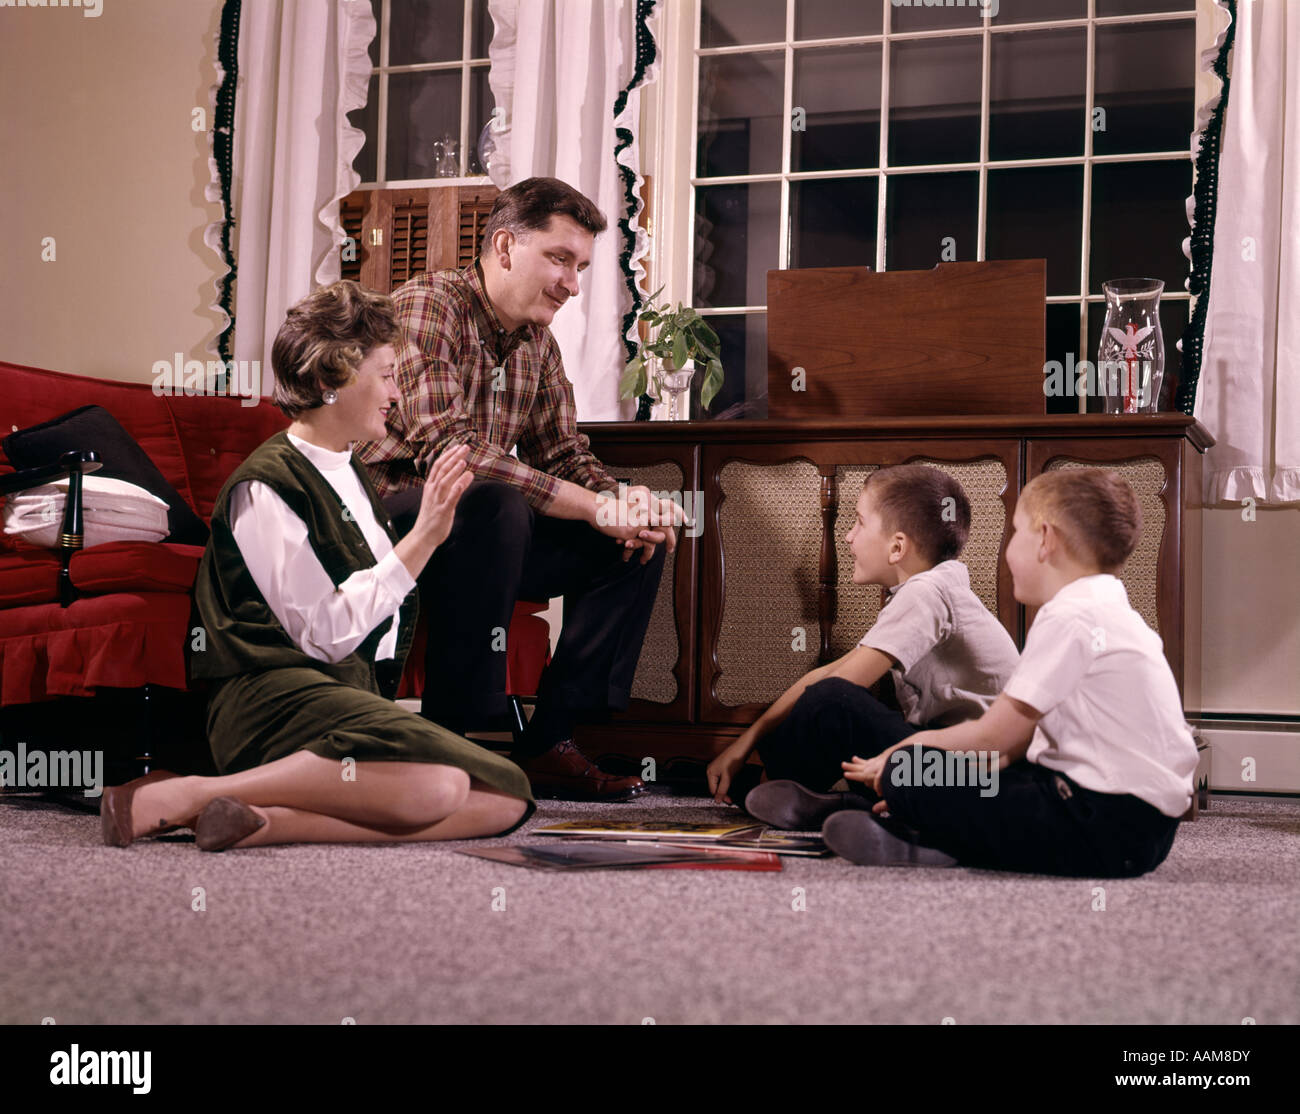 Music Living Room 1960s Family With Two Sons Gathered Around Record Player Listening